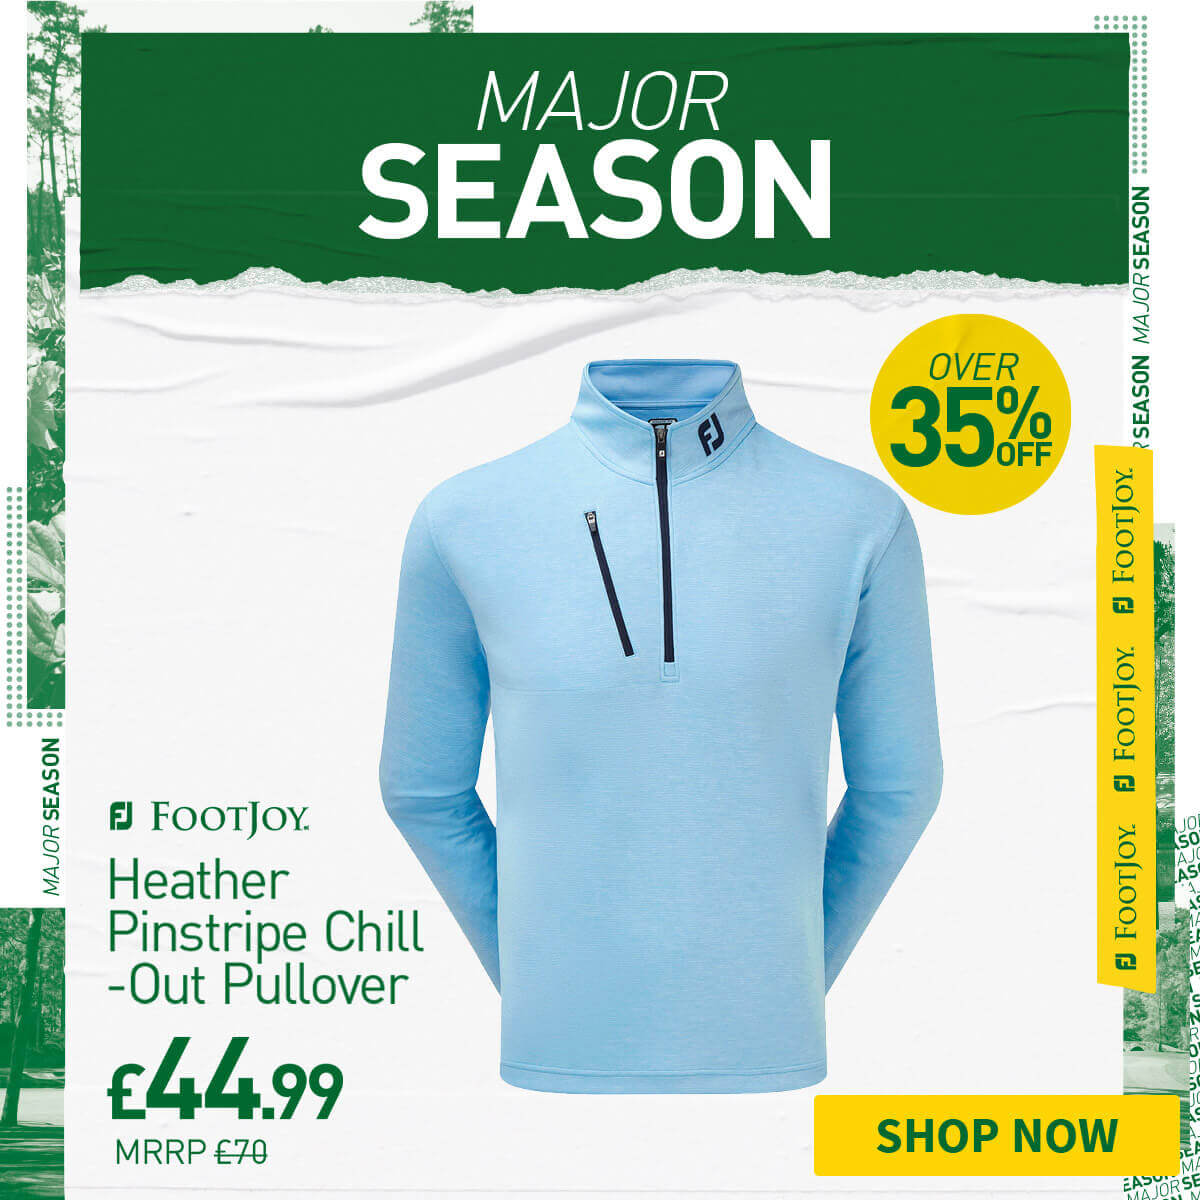 FOOTJOY HEATHER PINSTRIPE CHILL-OUT WINDTOP - OVER 35% OFF